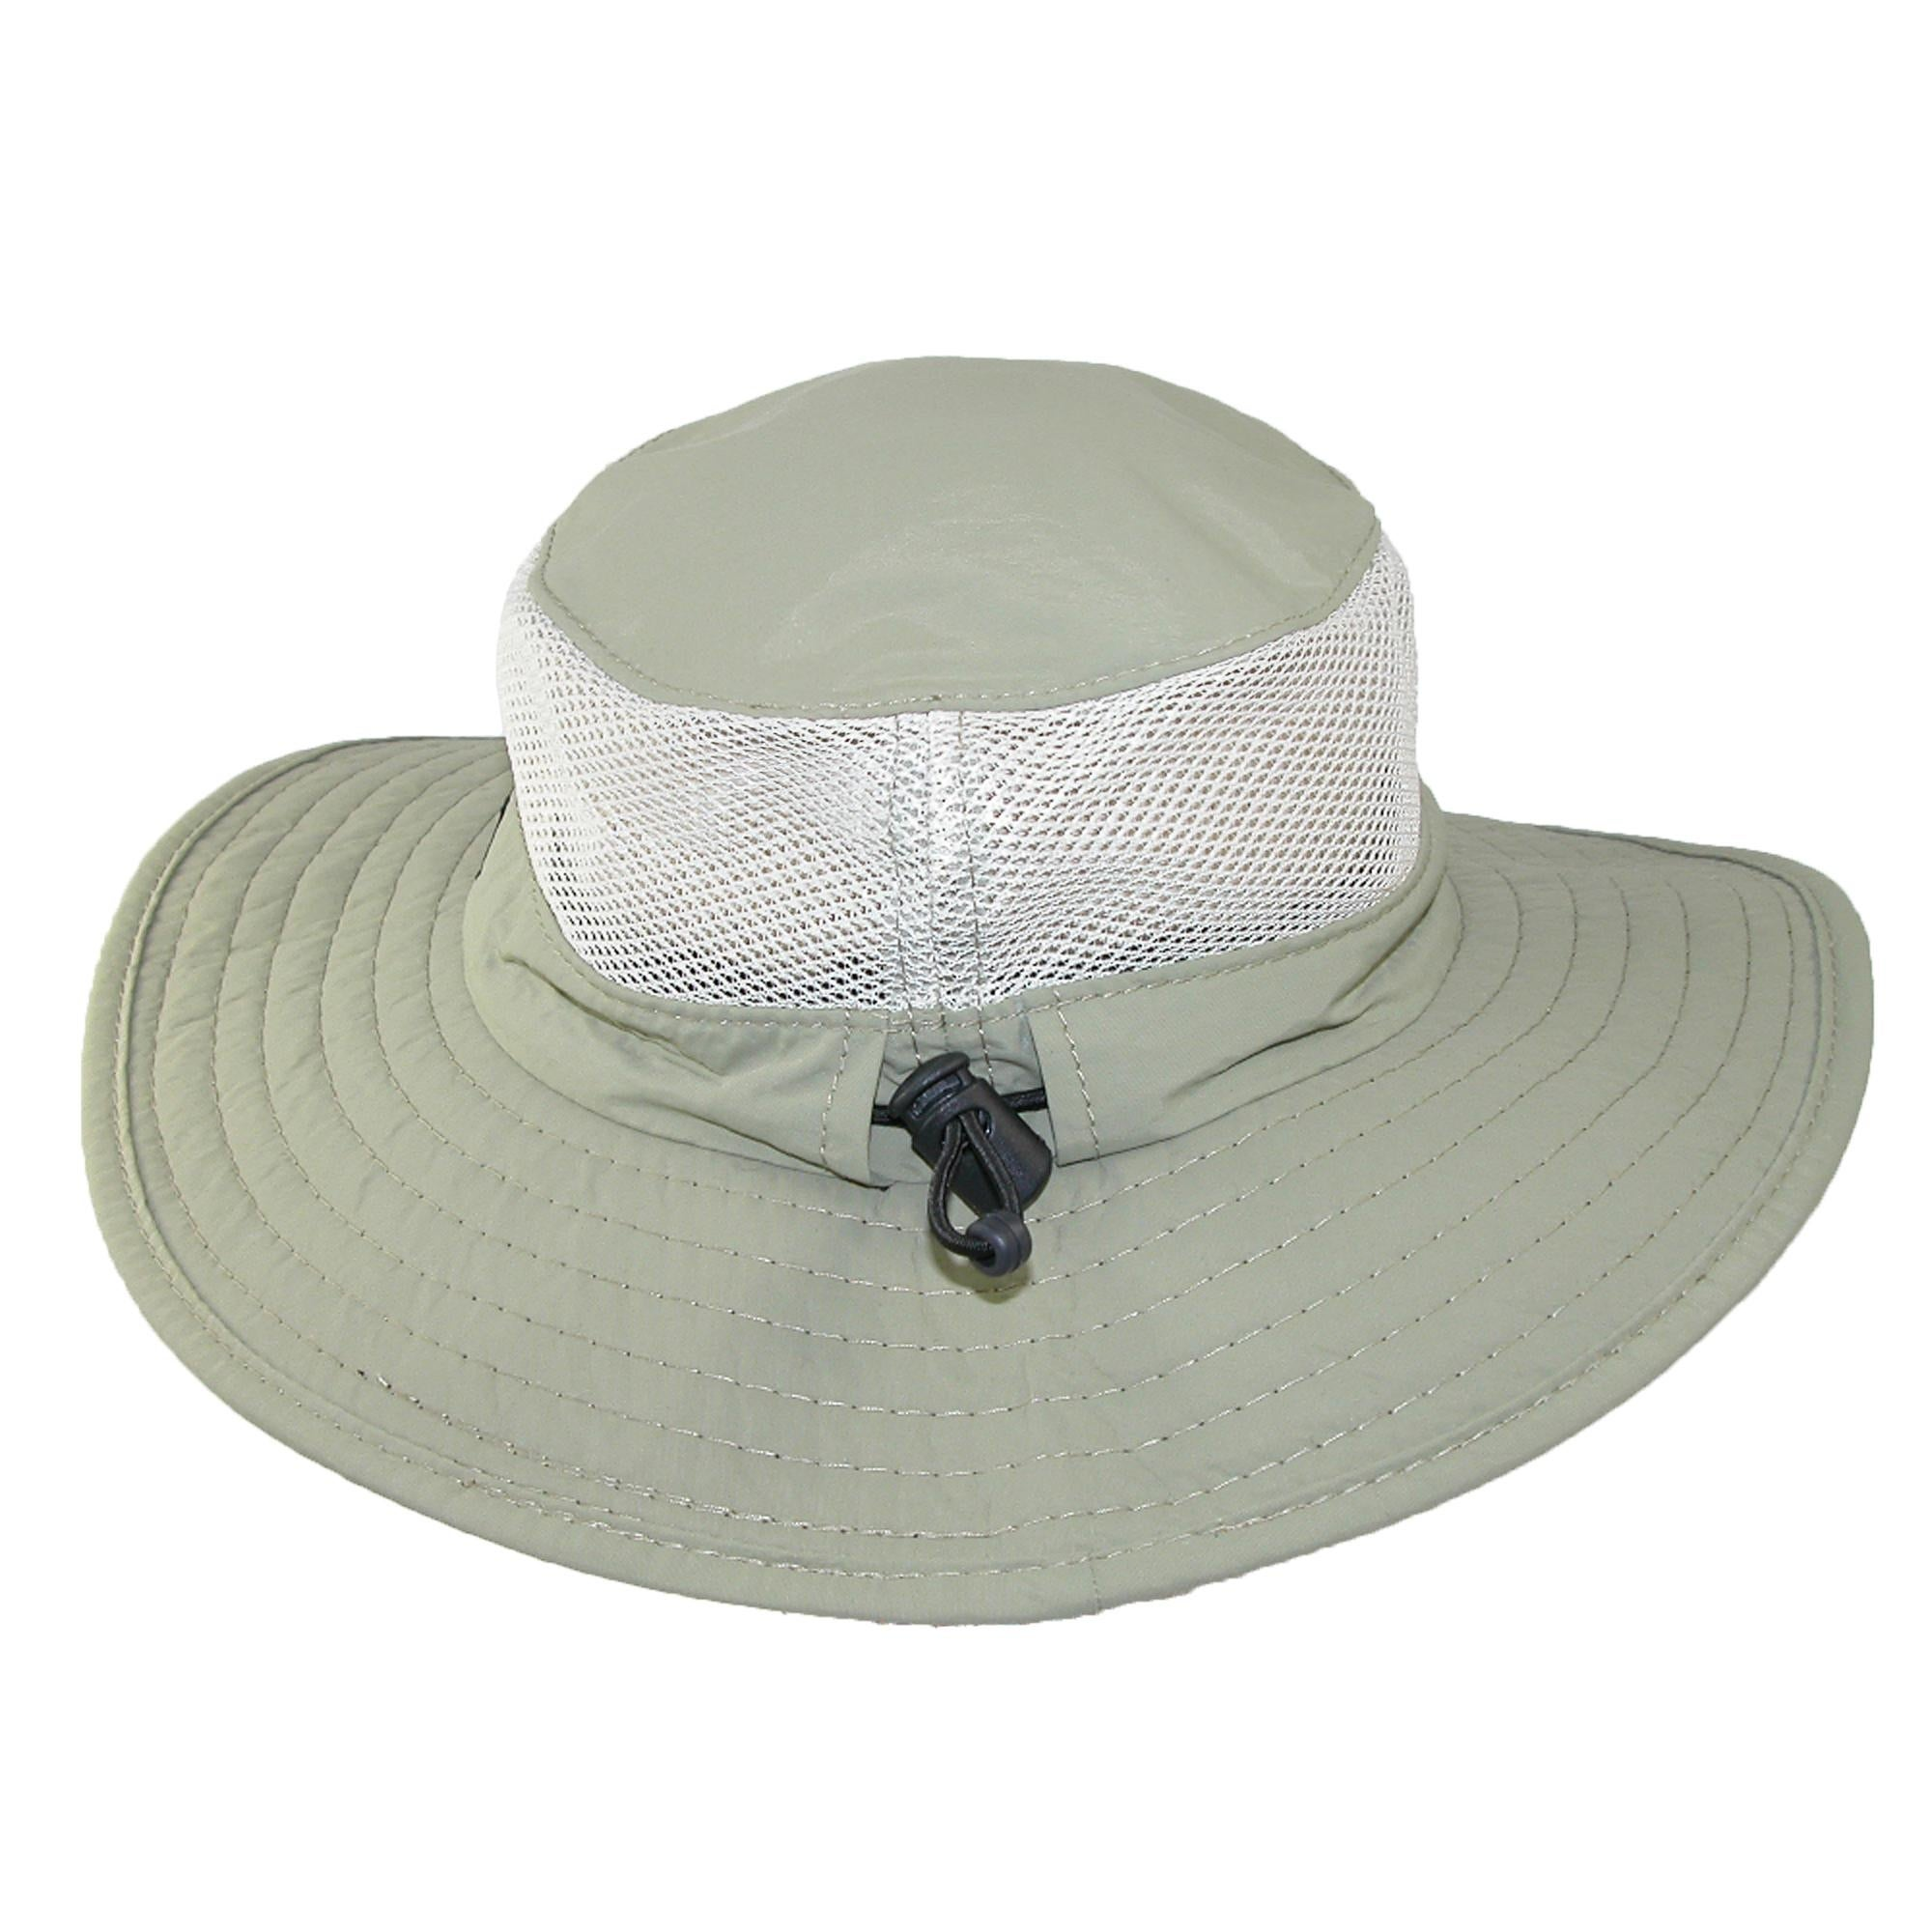 2fdaba220f73d Shop Dorfman Pacific Wide Brim Sun Supplex Hat with Mesh Sides - Free  Shipping On Orders Over  45 - Overstock.com - 14282057